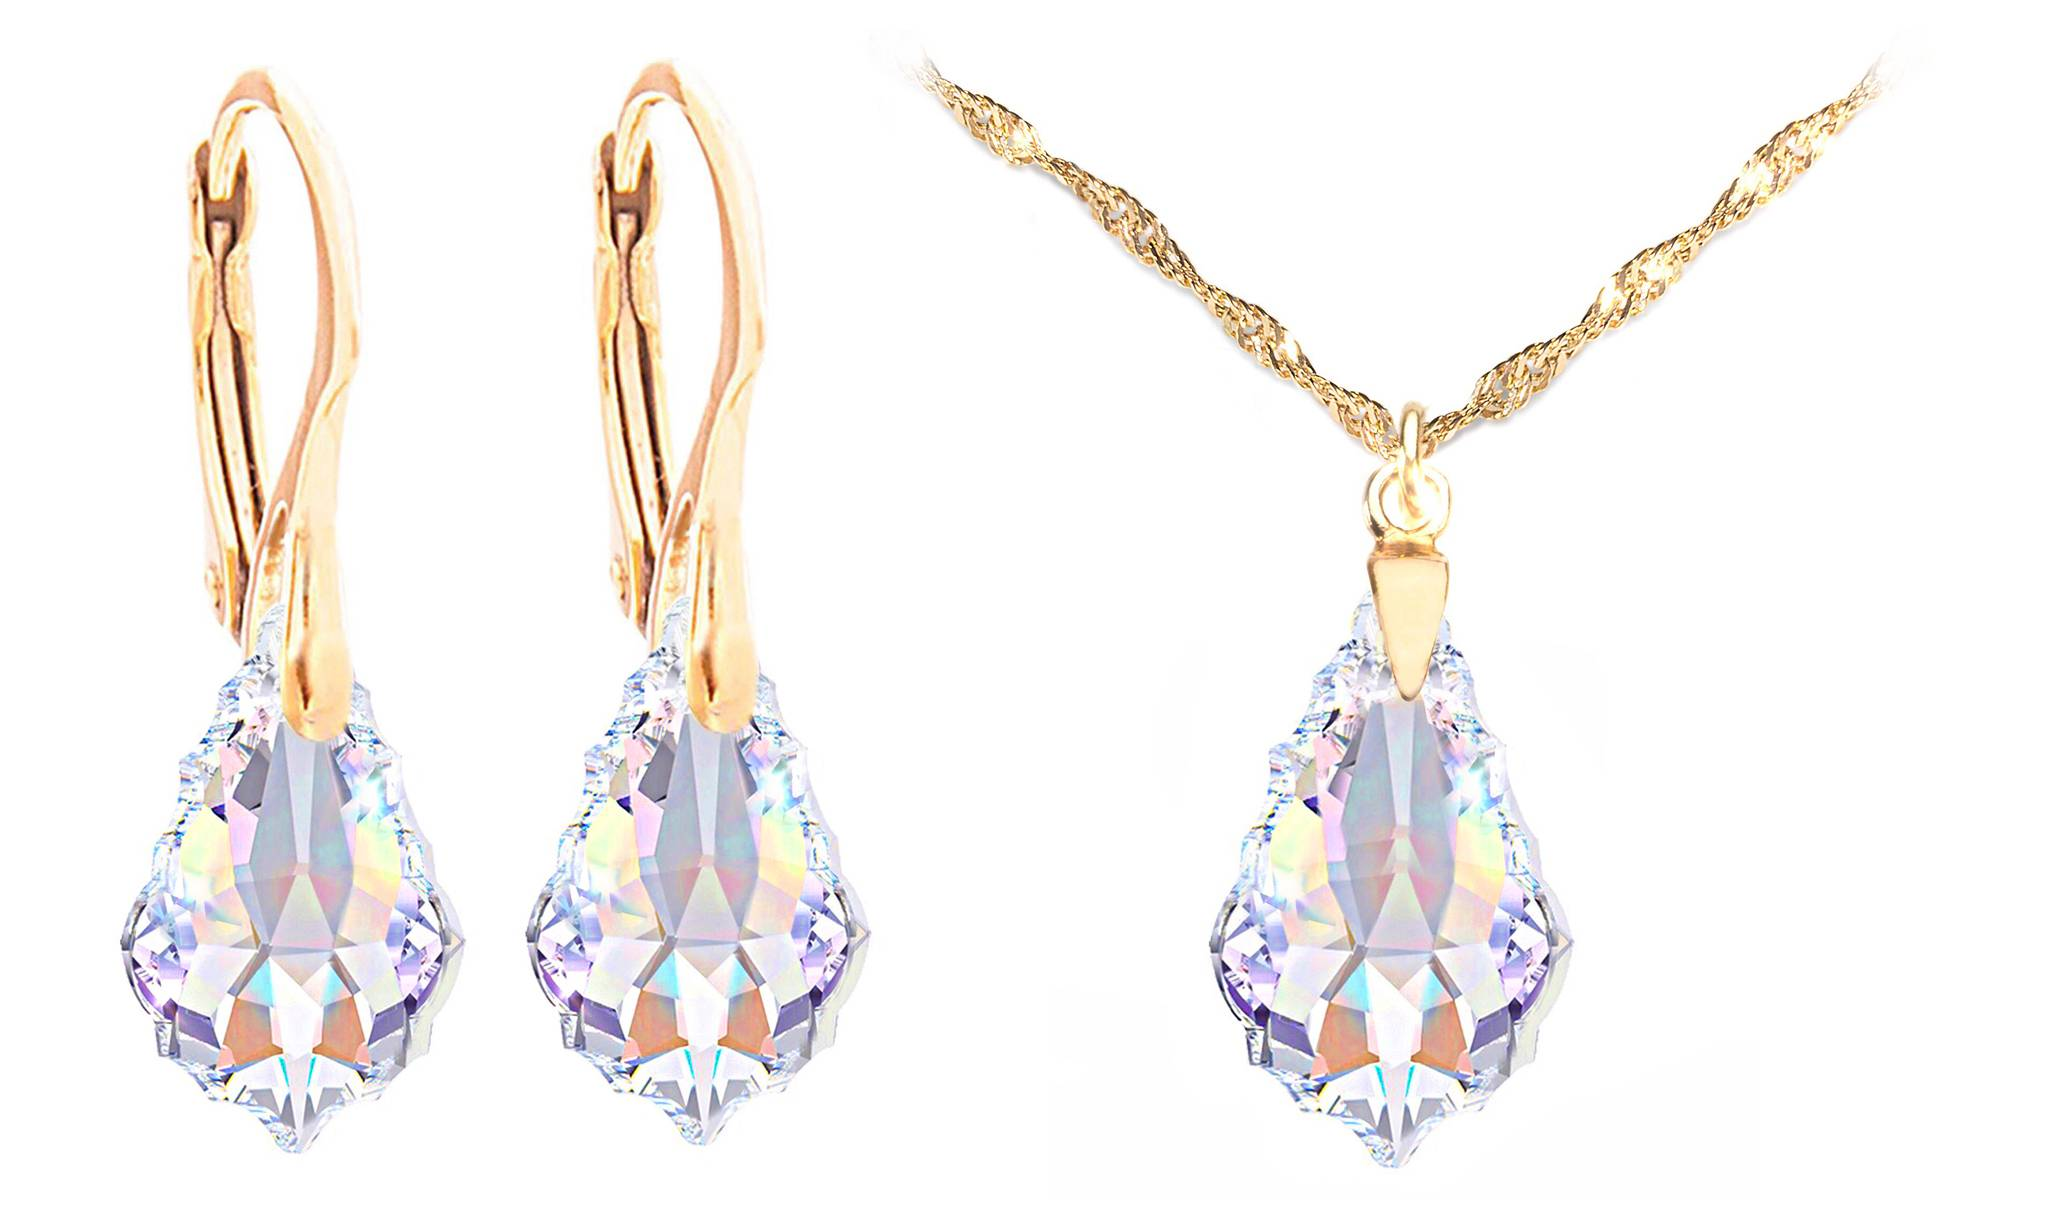 119.00 Ah! Jewellery Baroque Necklace Earrings Set: Aurore Boreale / Earrings and Necklace Set / Gold-Coloured